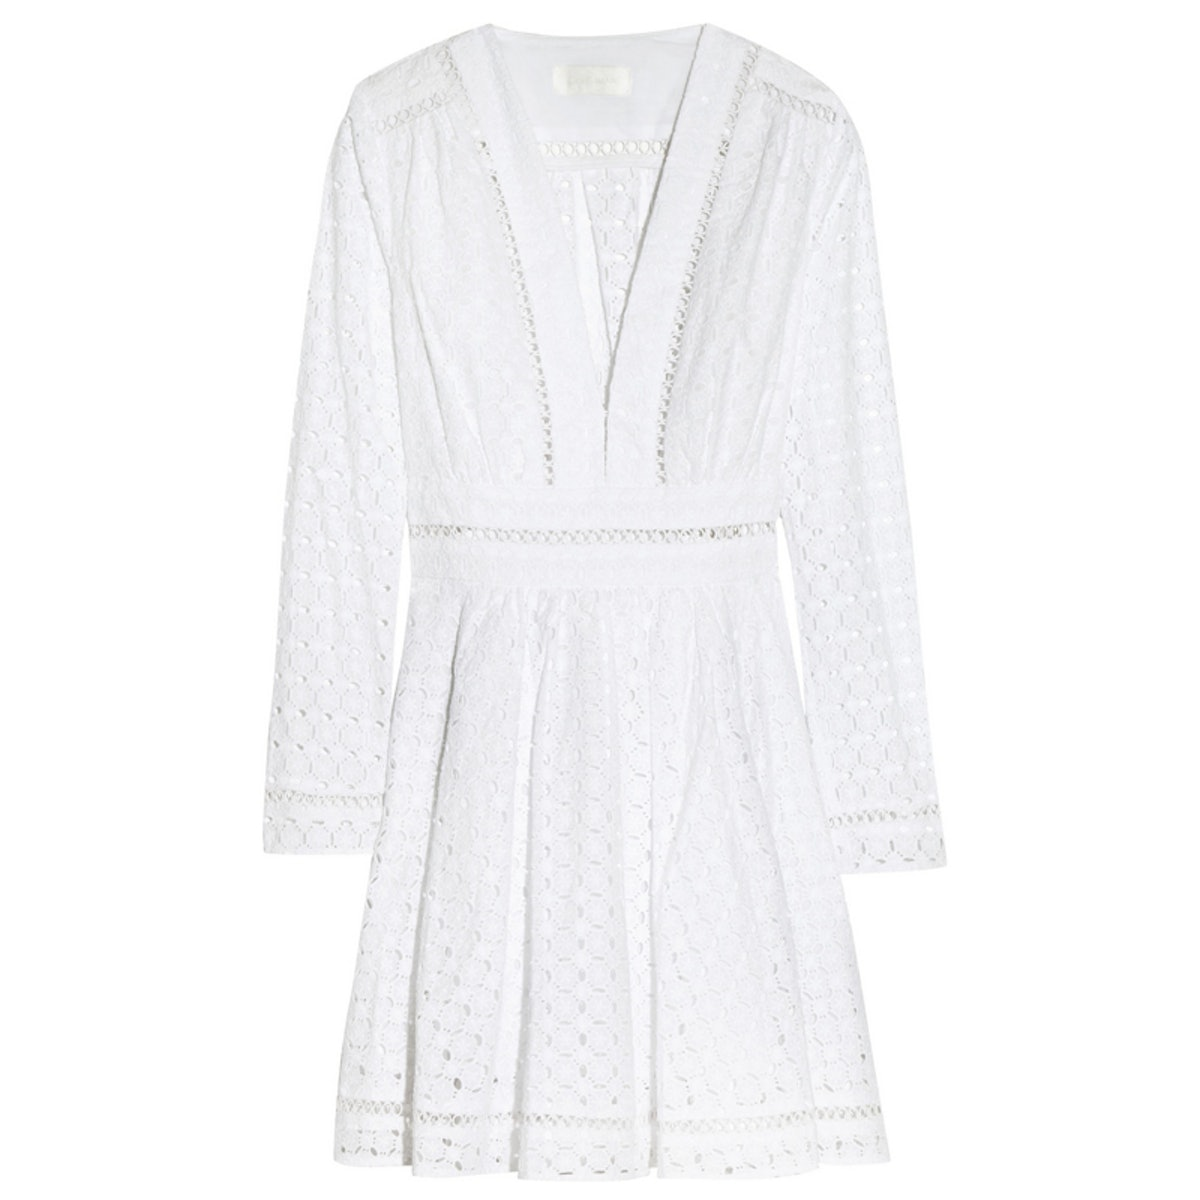 Ryker Broderie Anglaise Cotton Dress